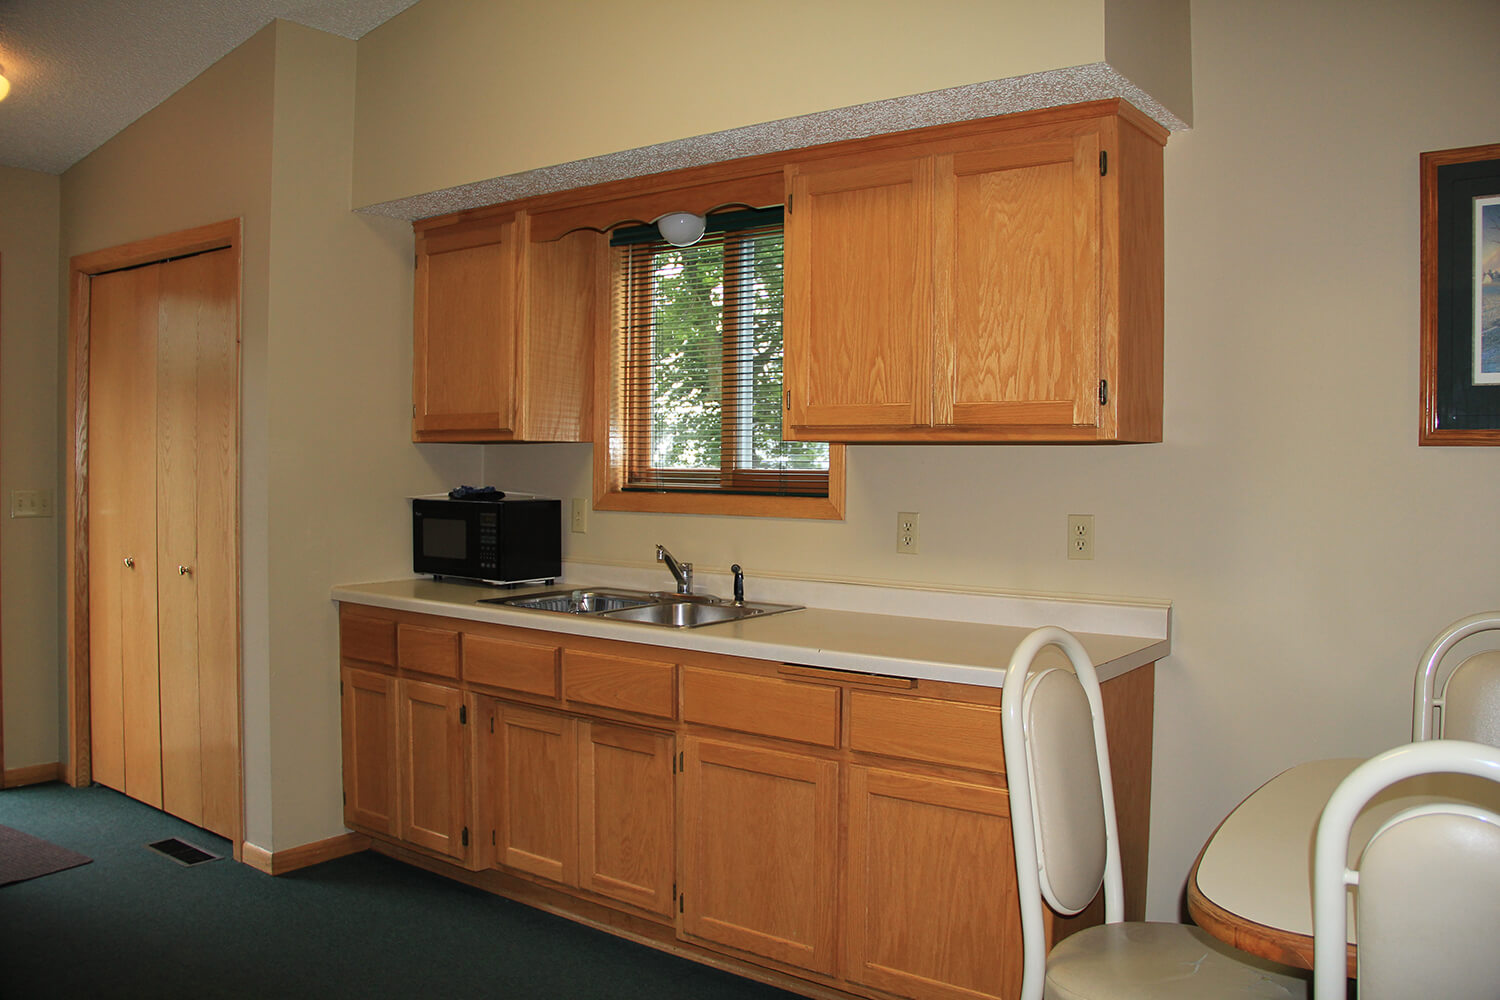 Cabin 4 Kitchenette on Lake Mille Lacs